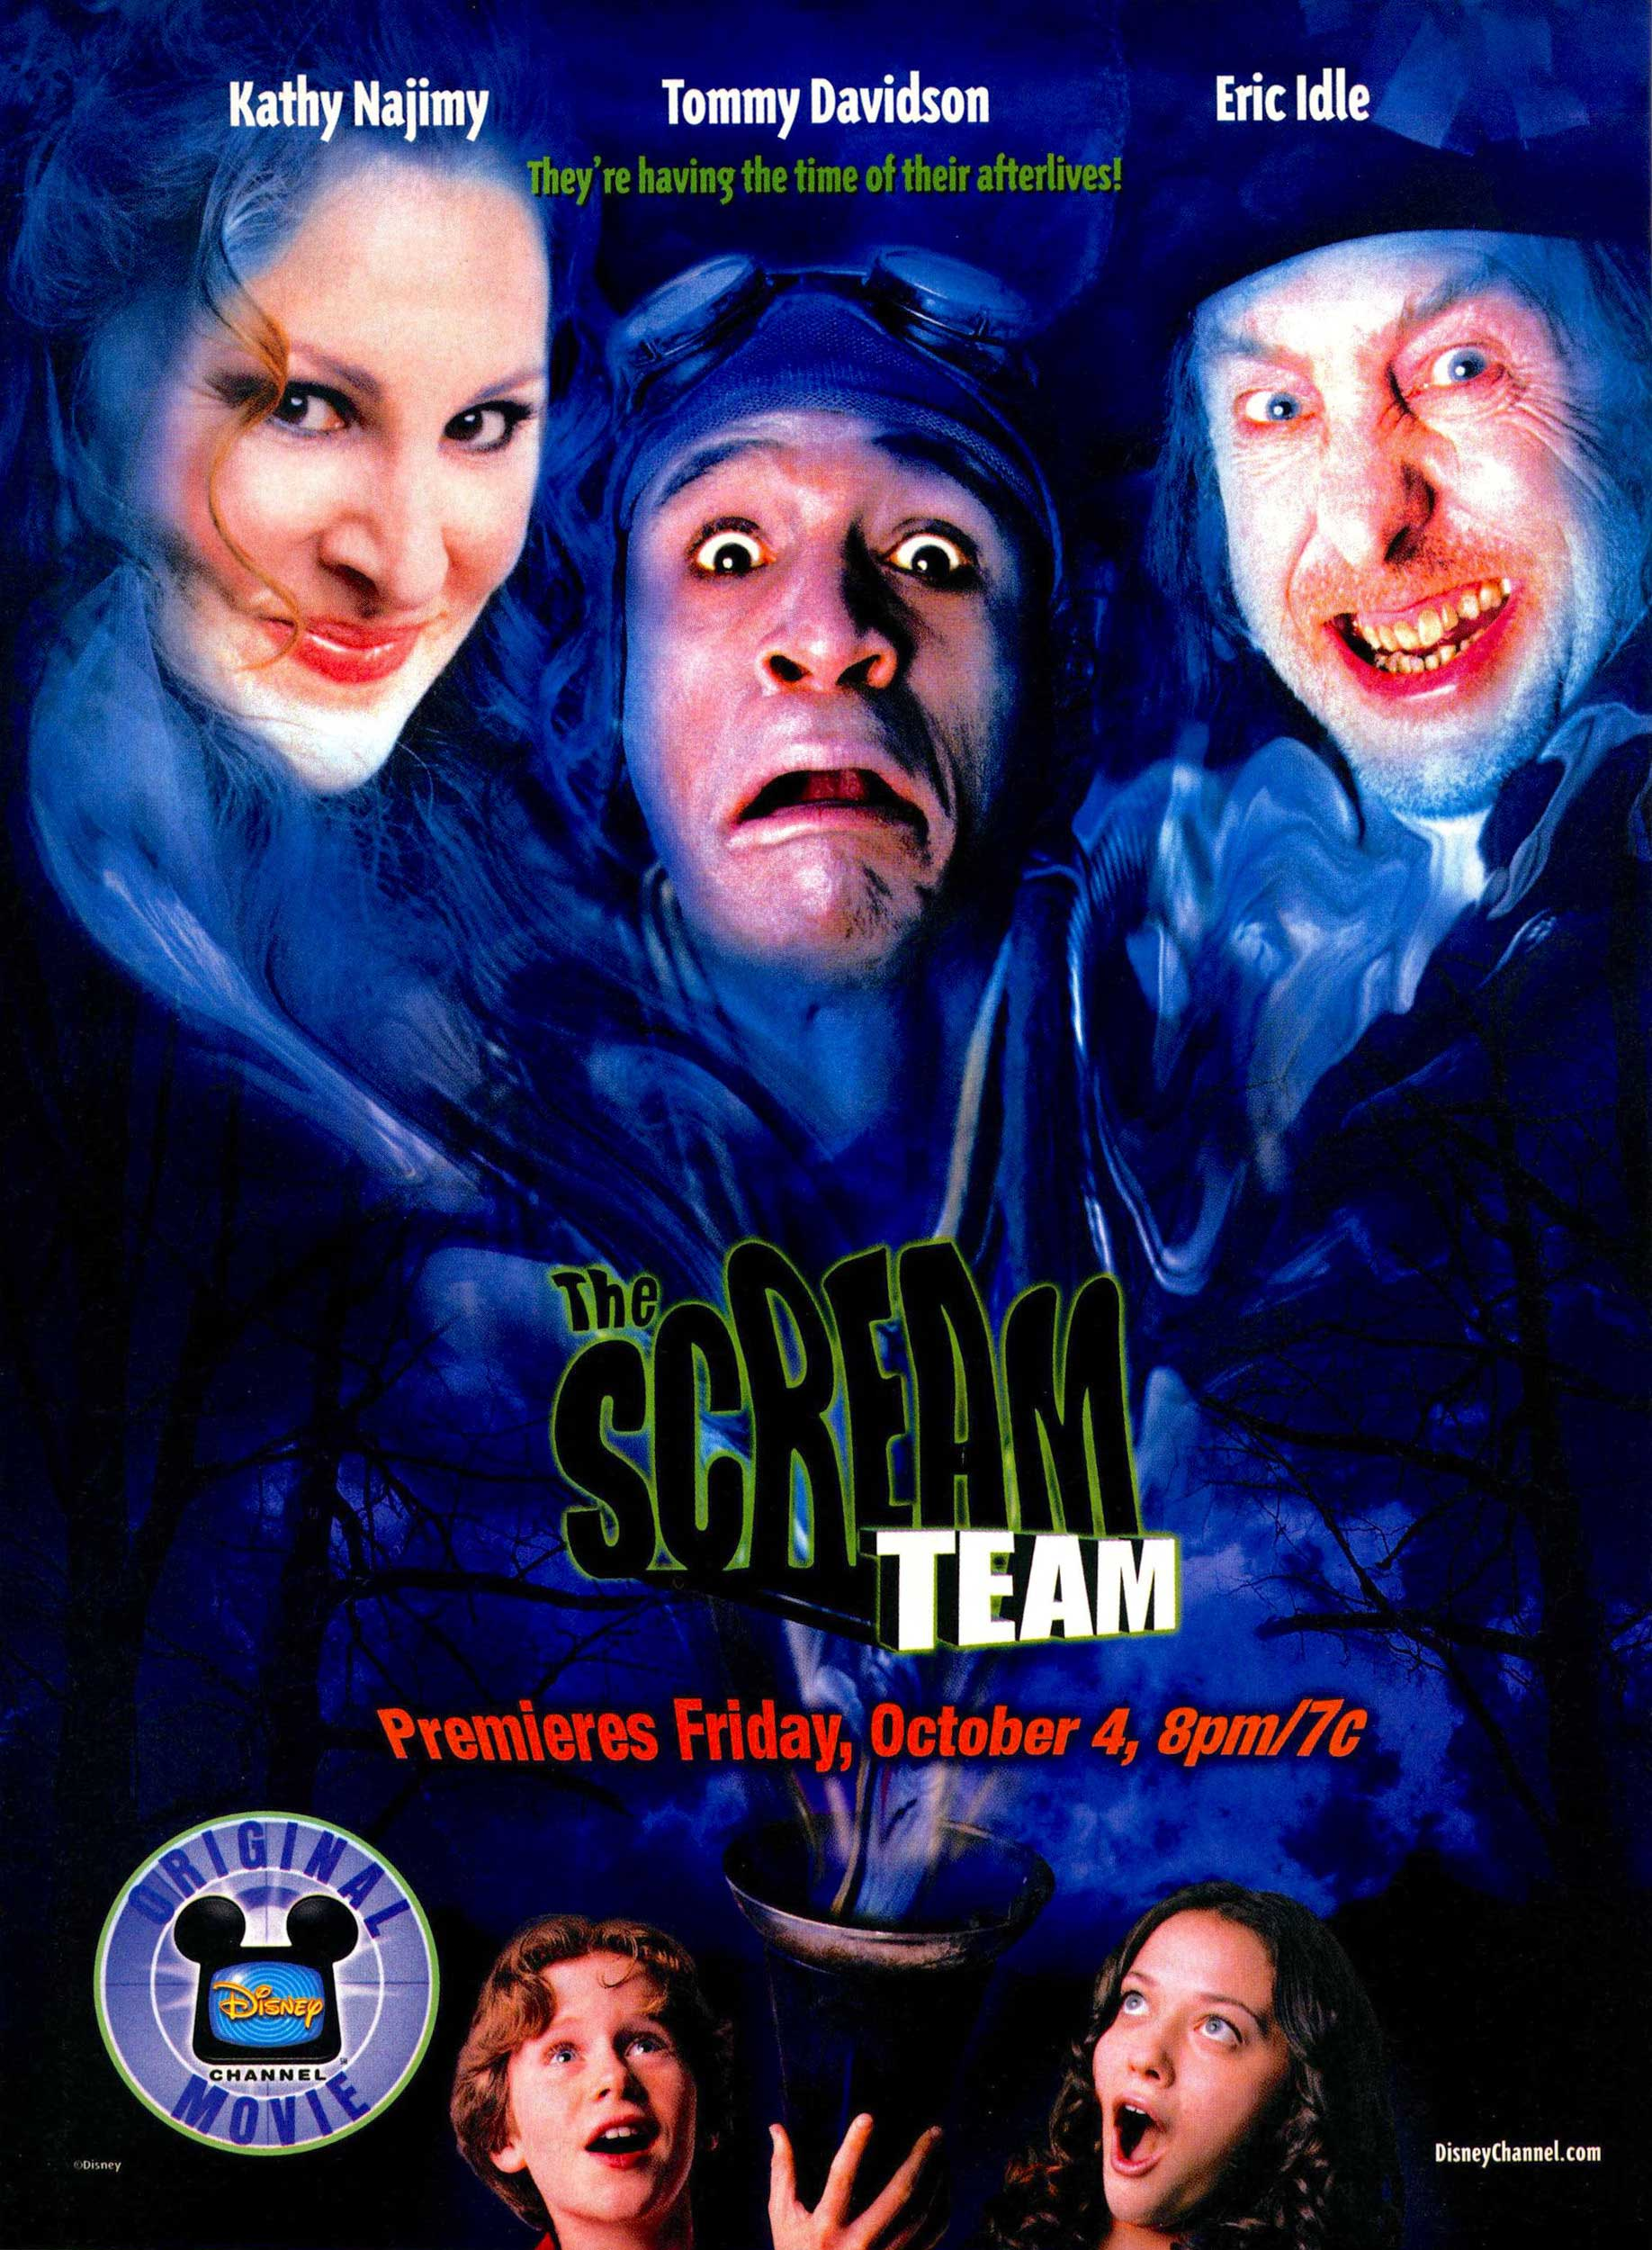 Affiche Poster patrouille fantôme scream team disney channel